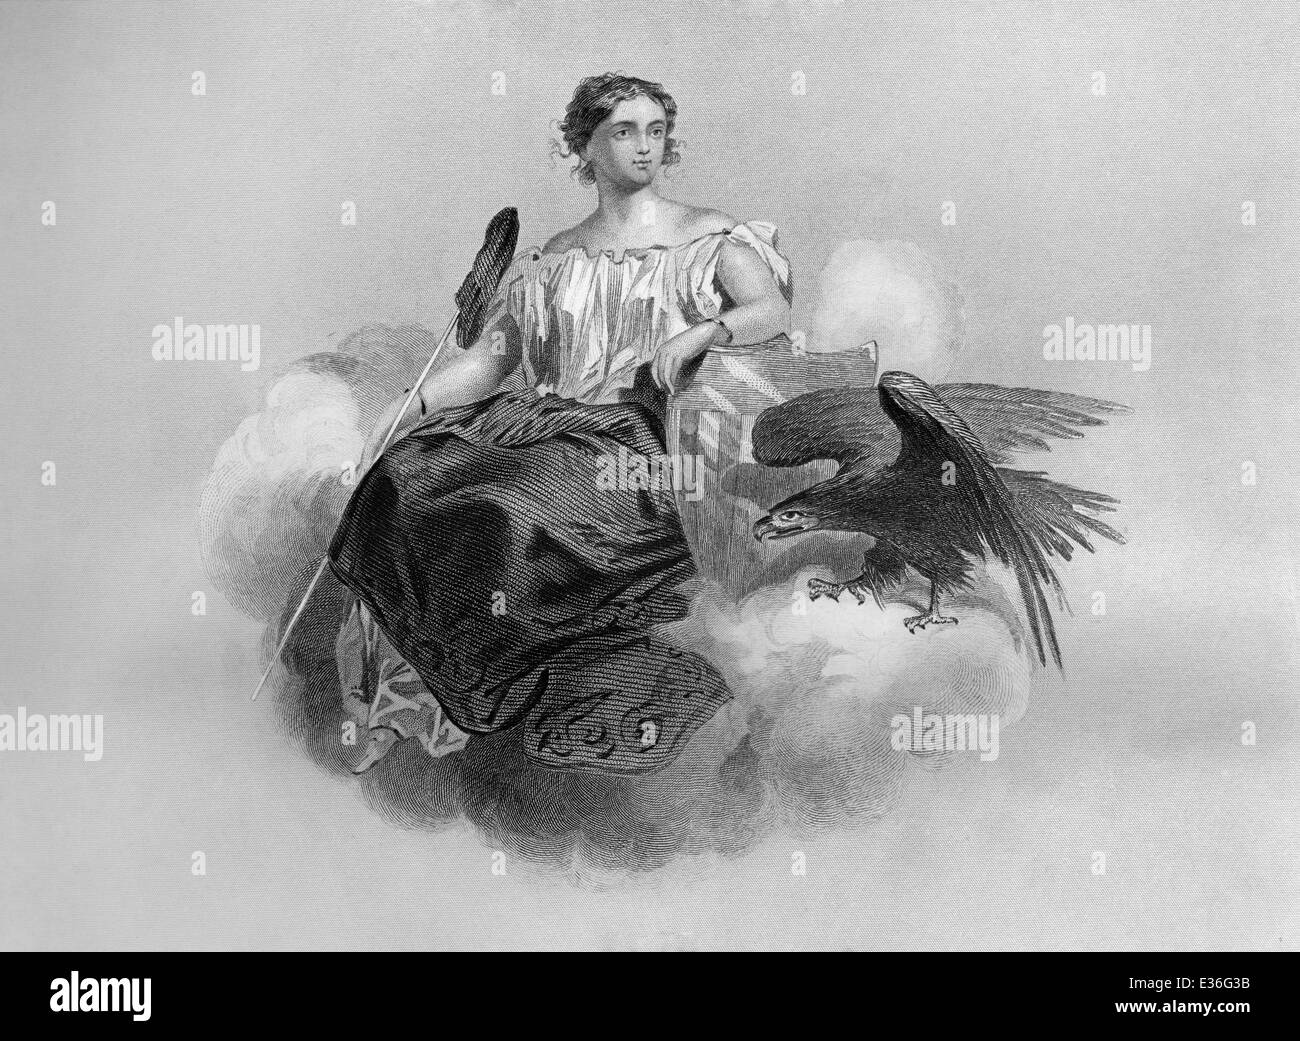 Allegory, United States of America, 19th century, - Stock Image